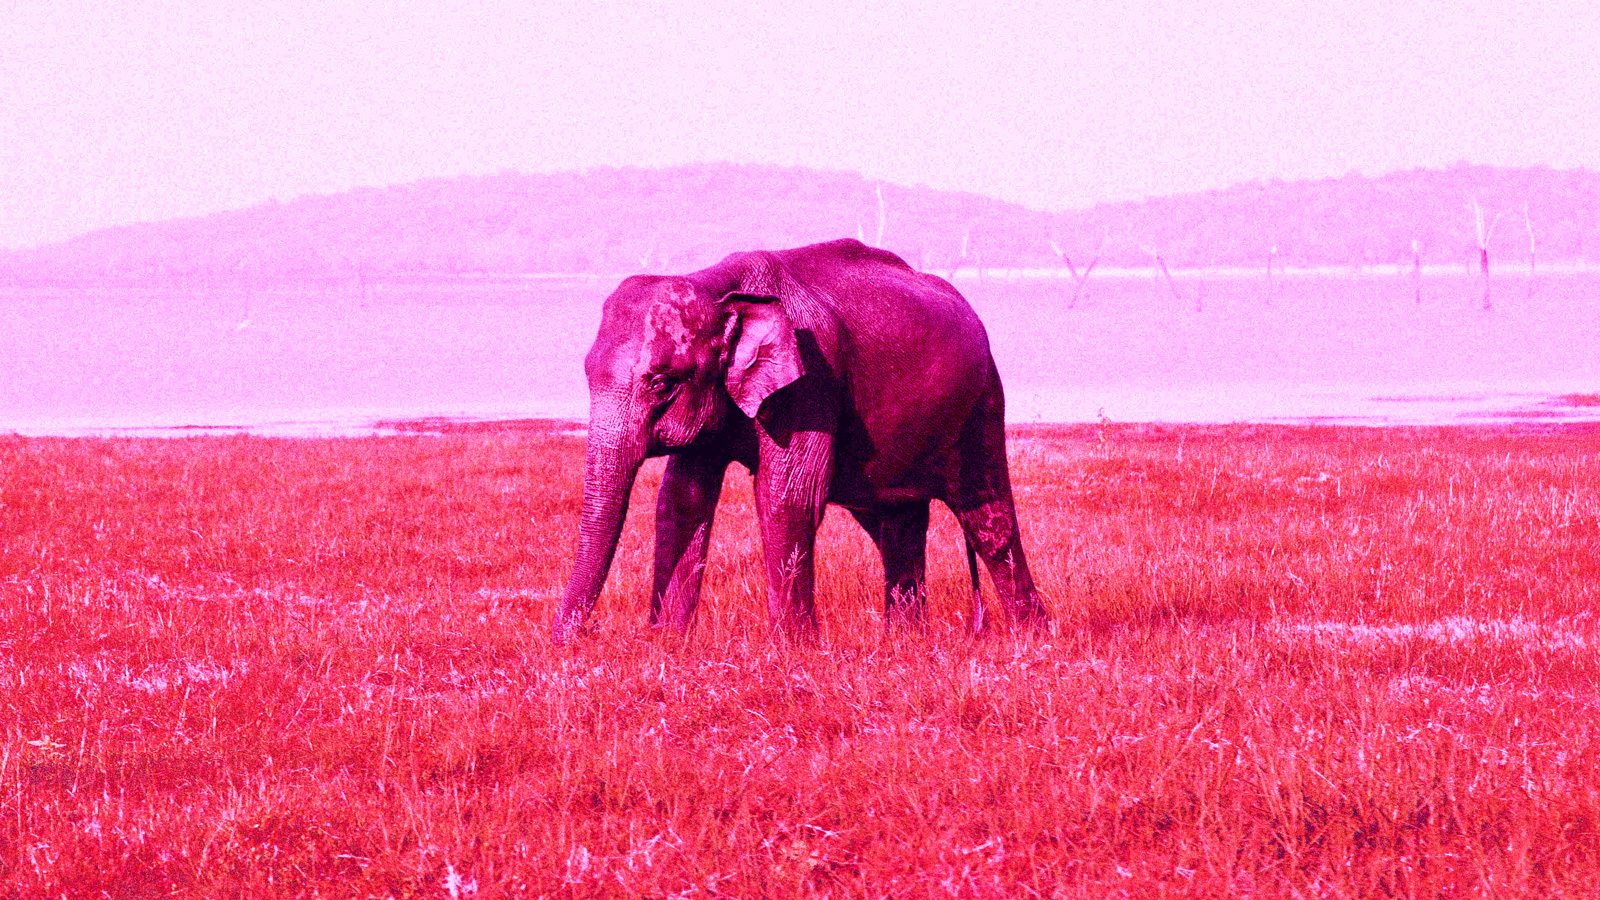 Hope you're hungry – it's time to be smart at eating pink elephants